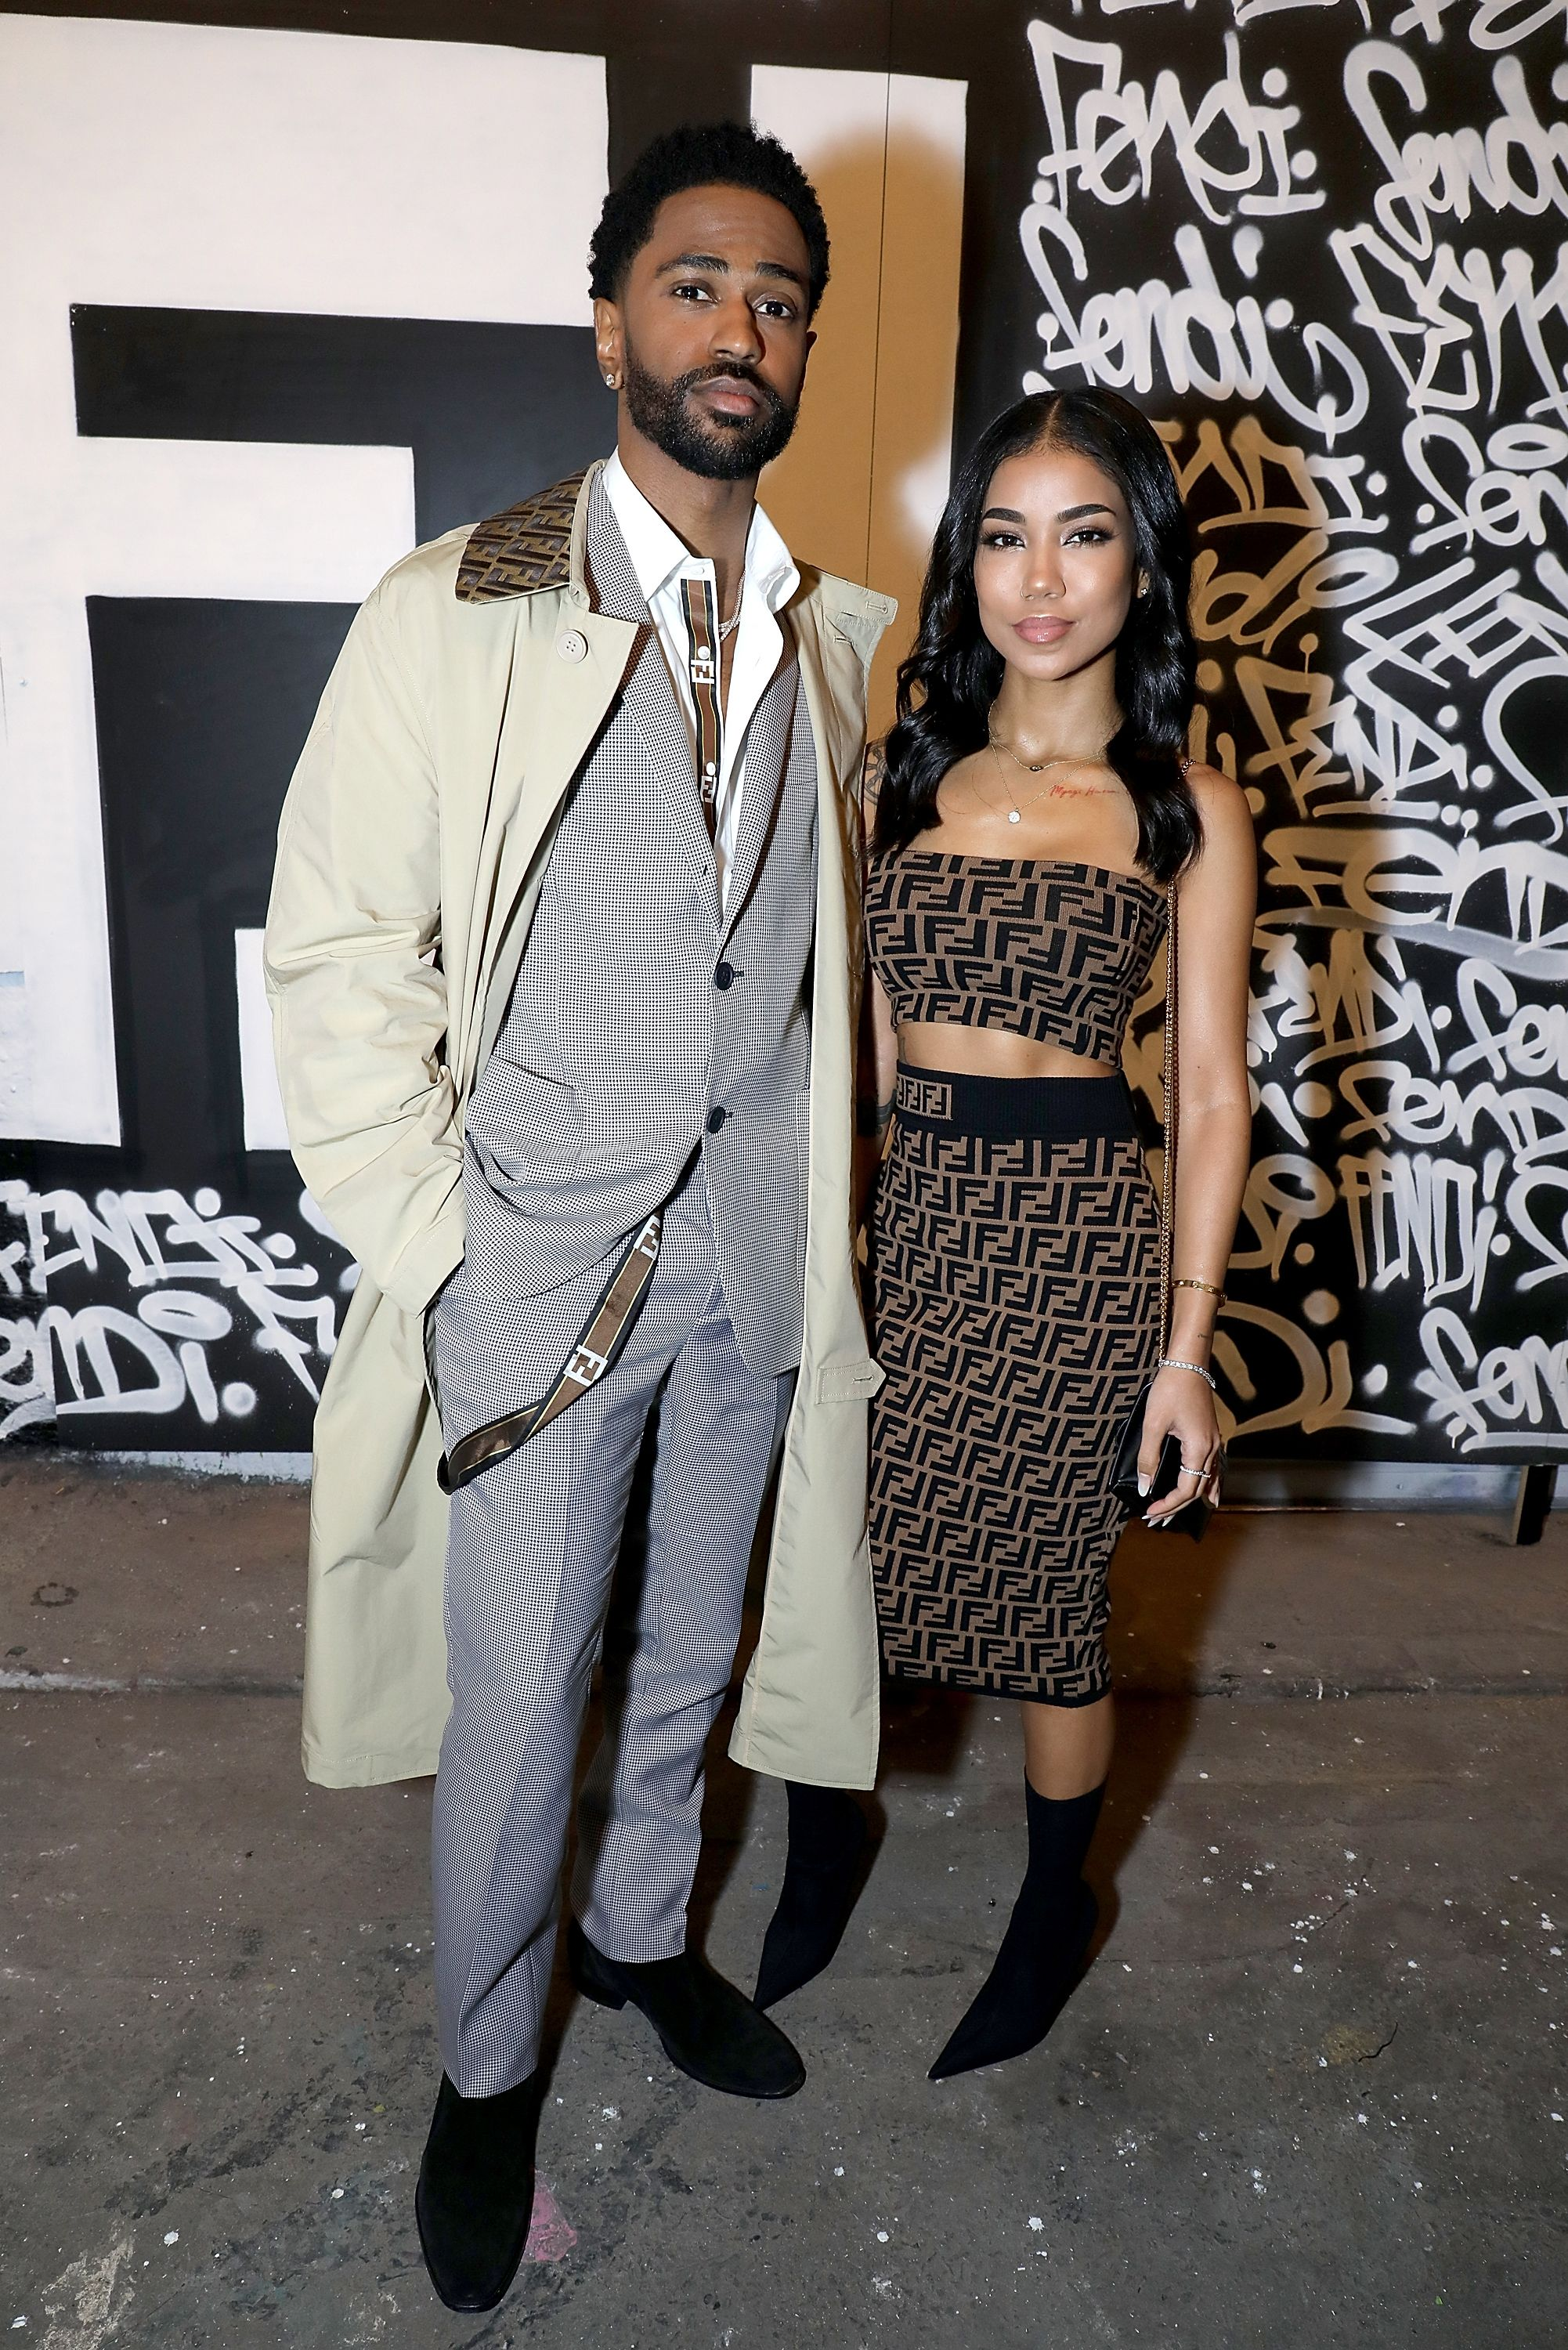 a7c2bf55b506 Big Sean and Jhene Aiko at the FF Reloaded Experience in London ...